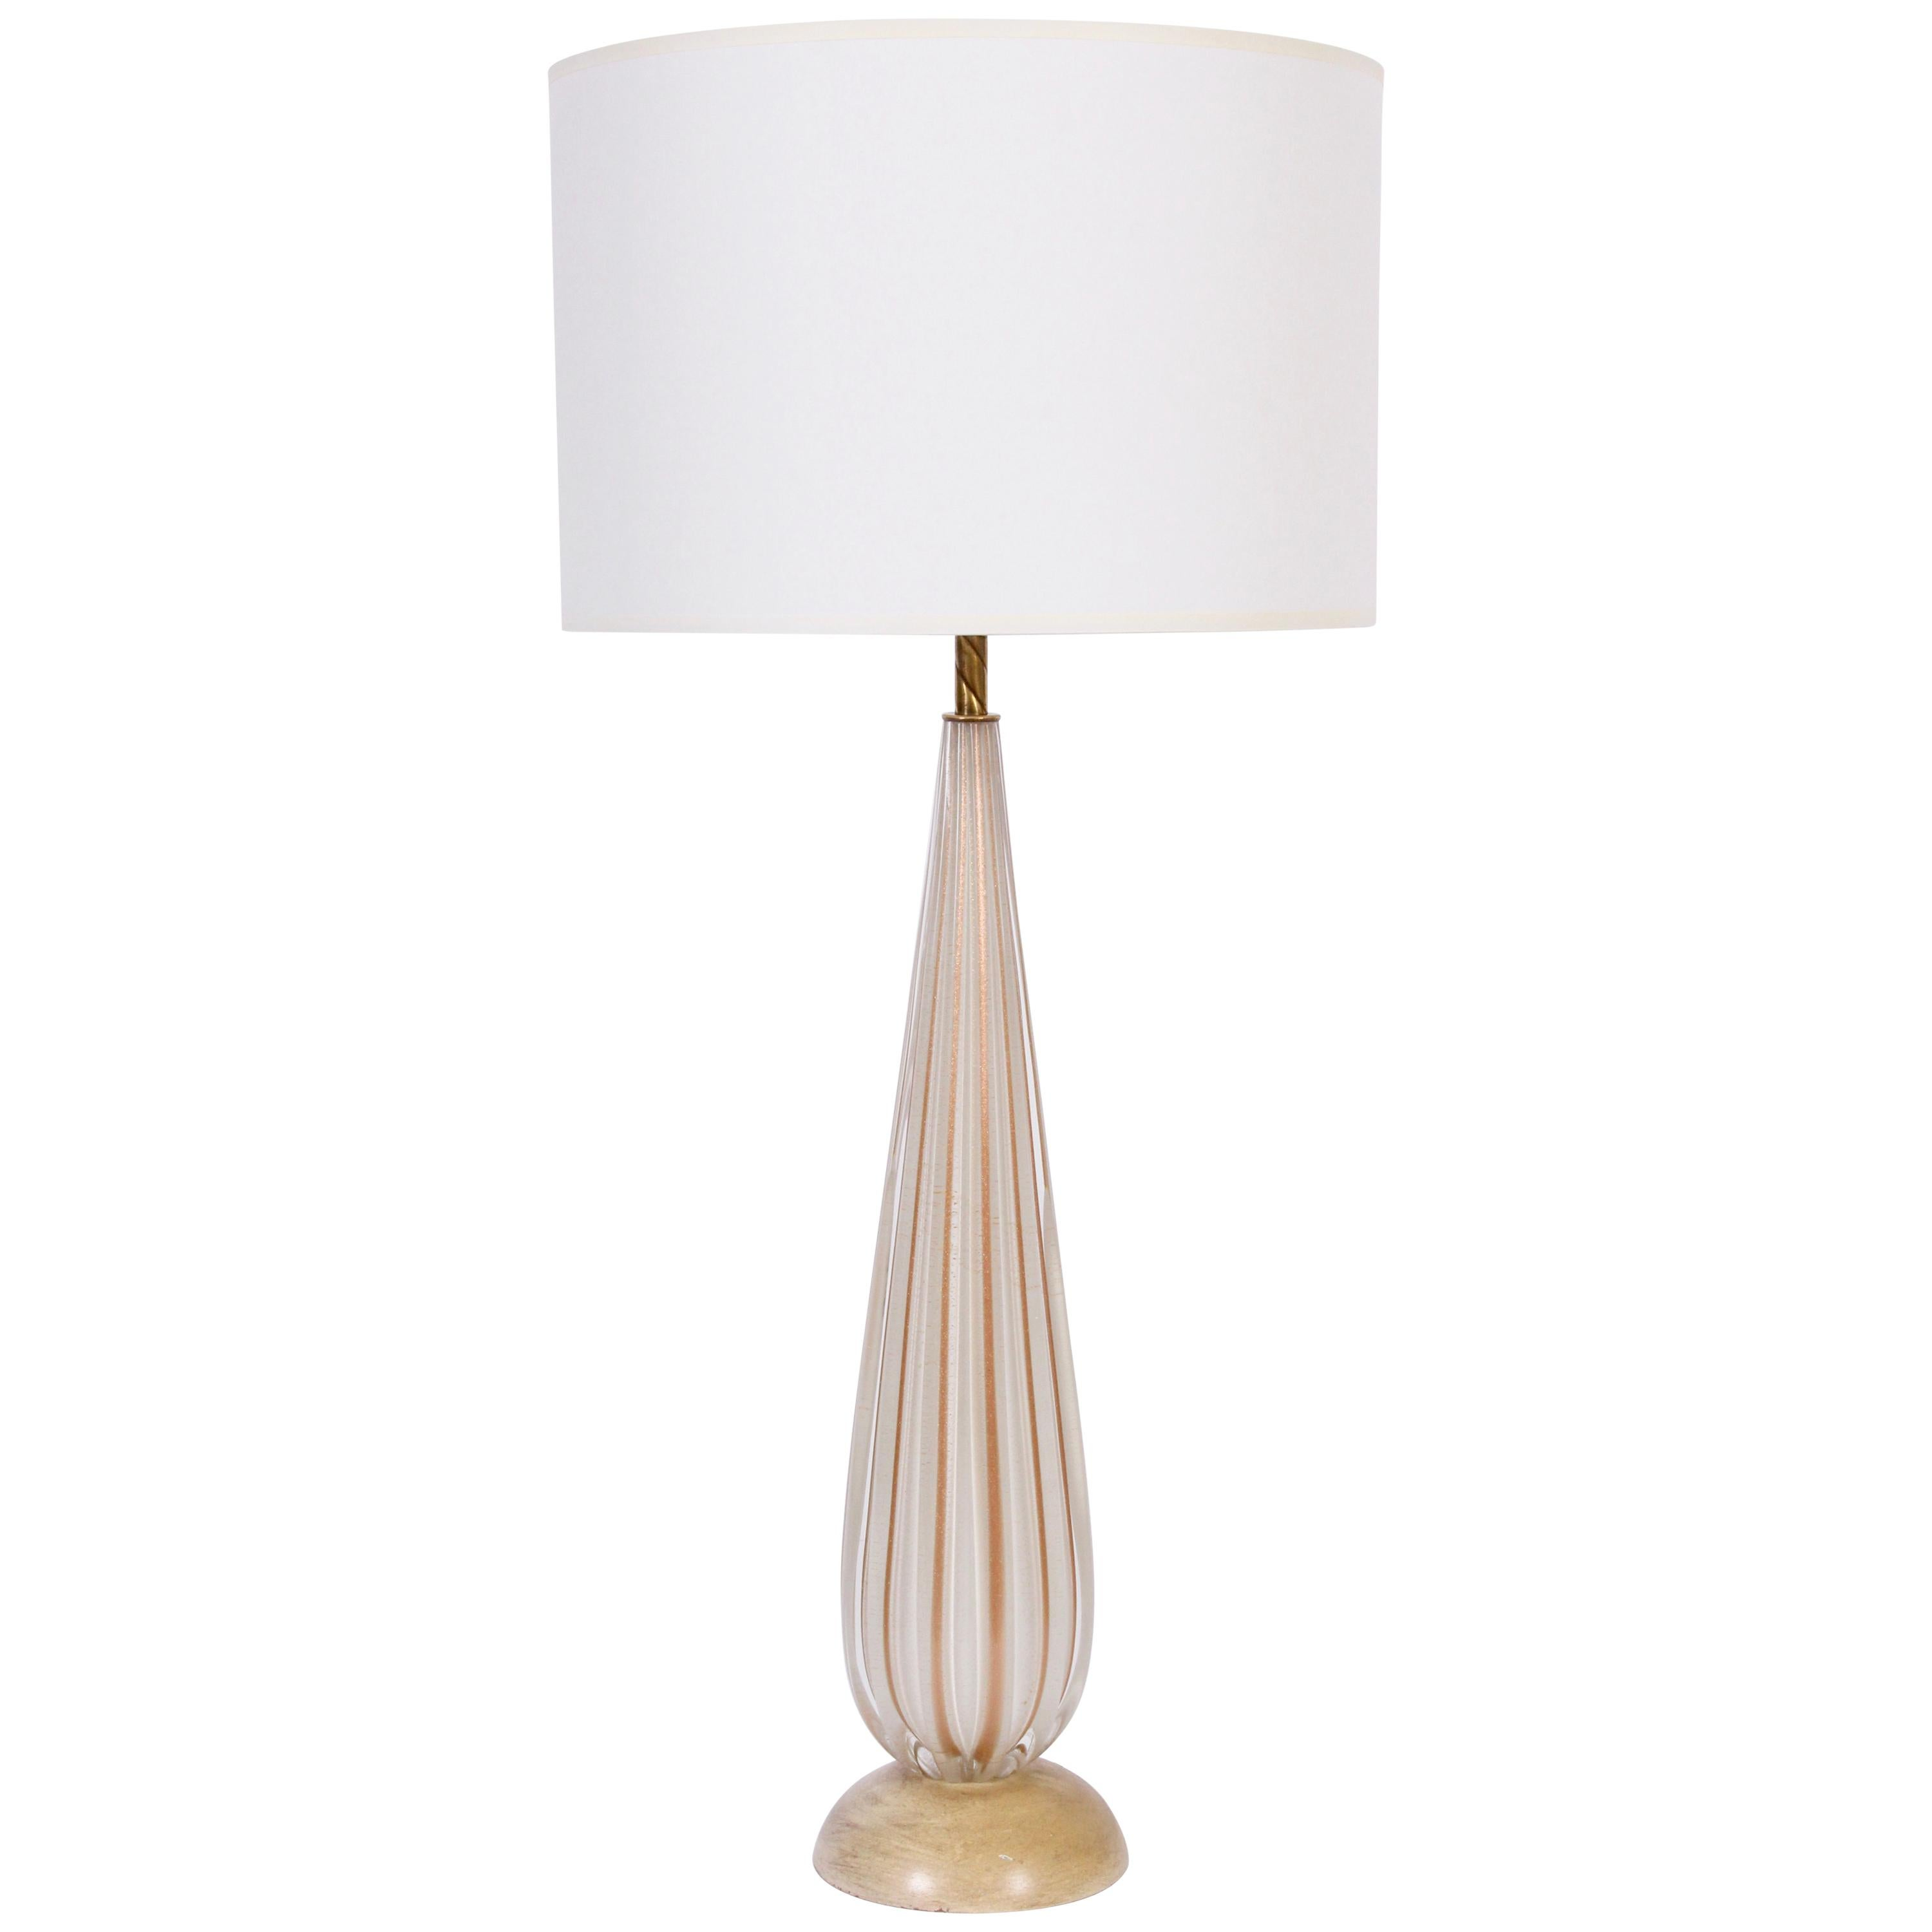 Tall Alfredo Barbini White Ribbed Murano Glass Table Lamp with Gold Inclusions